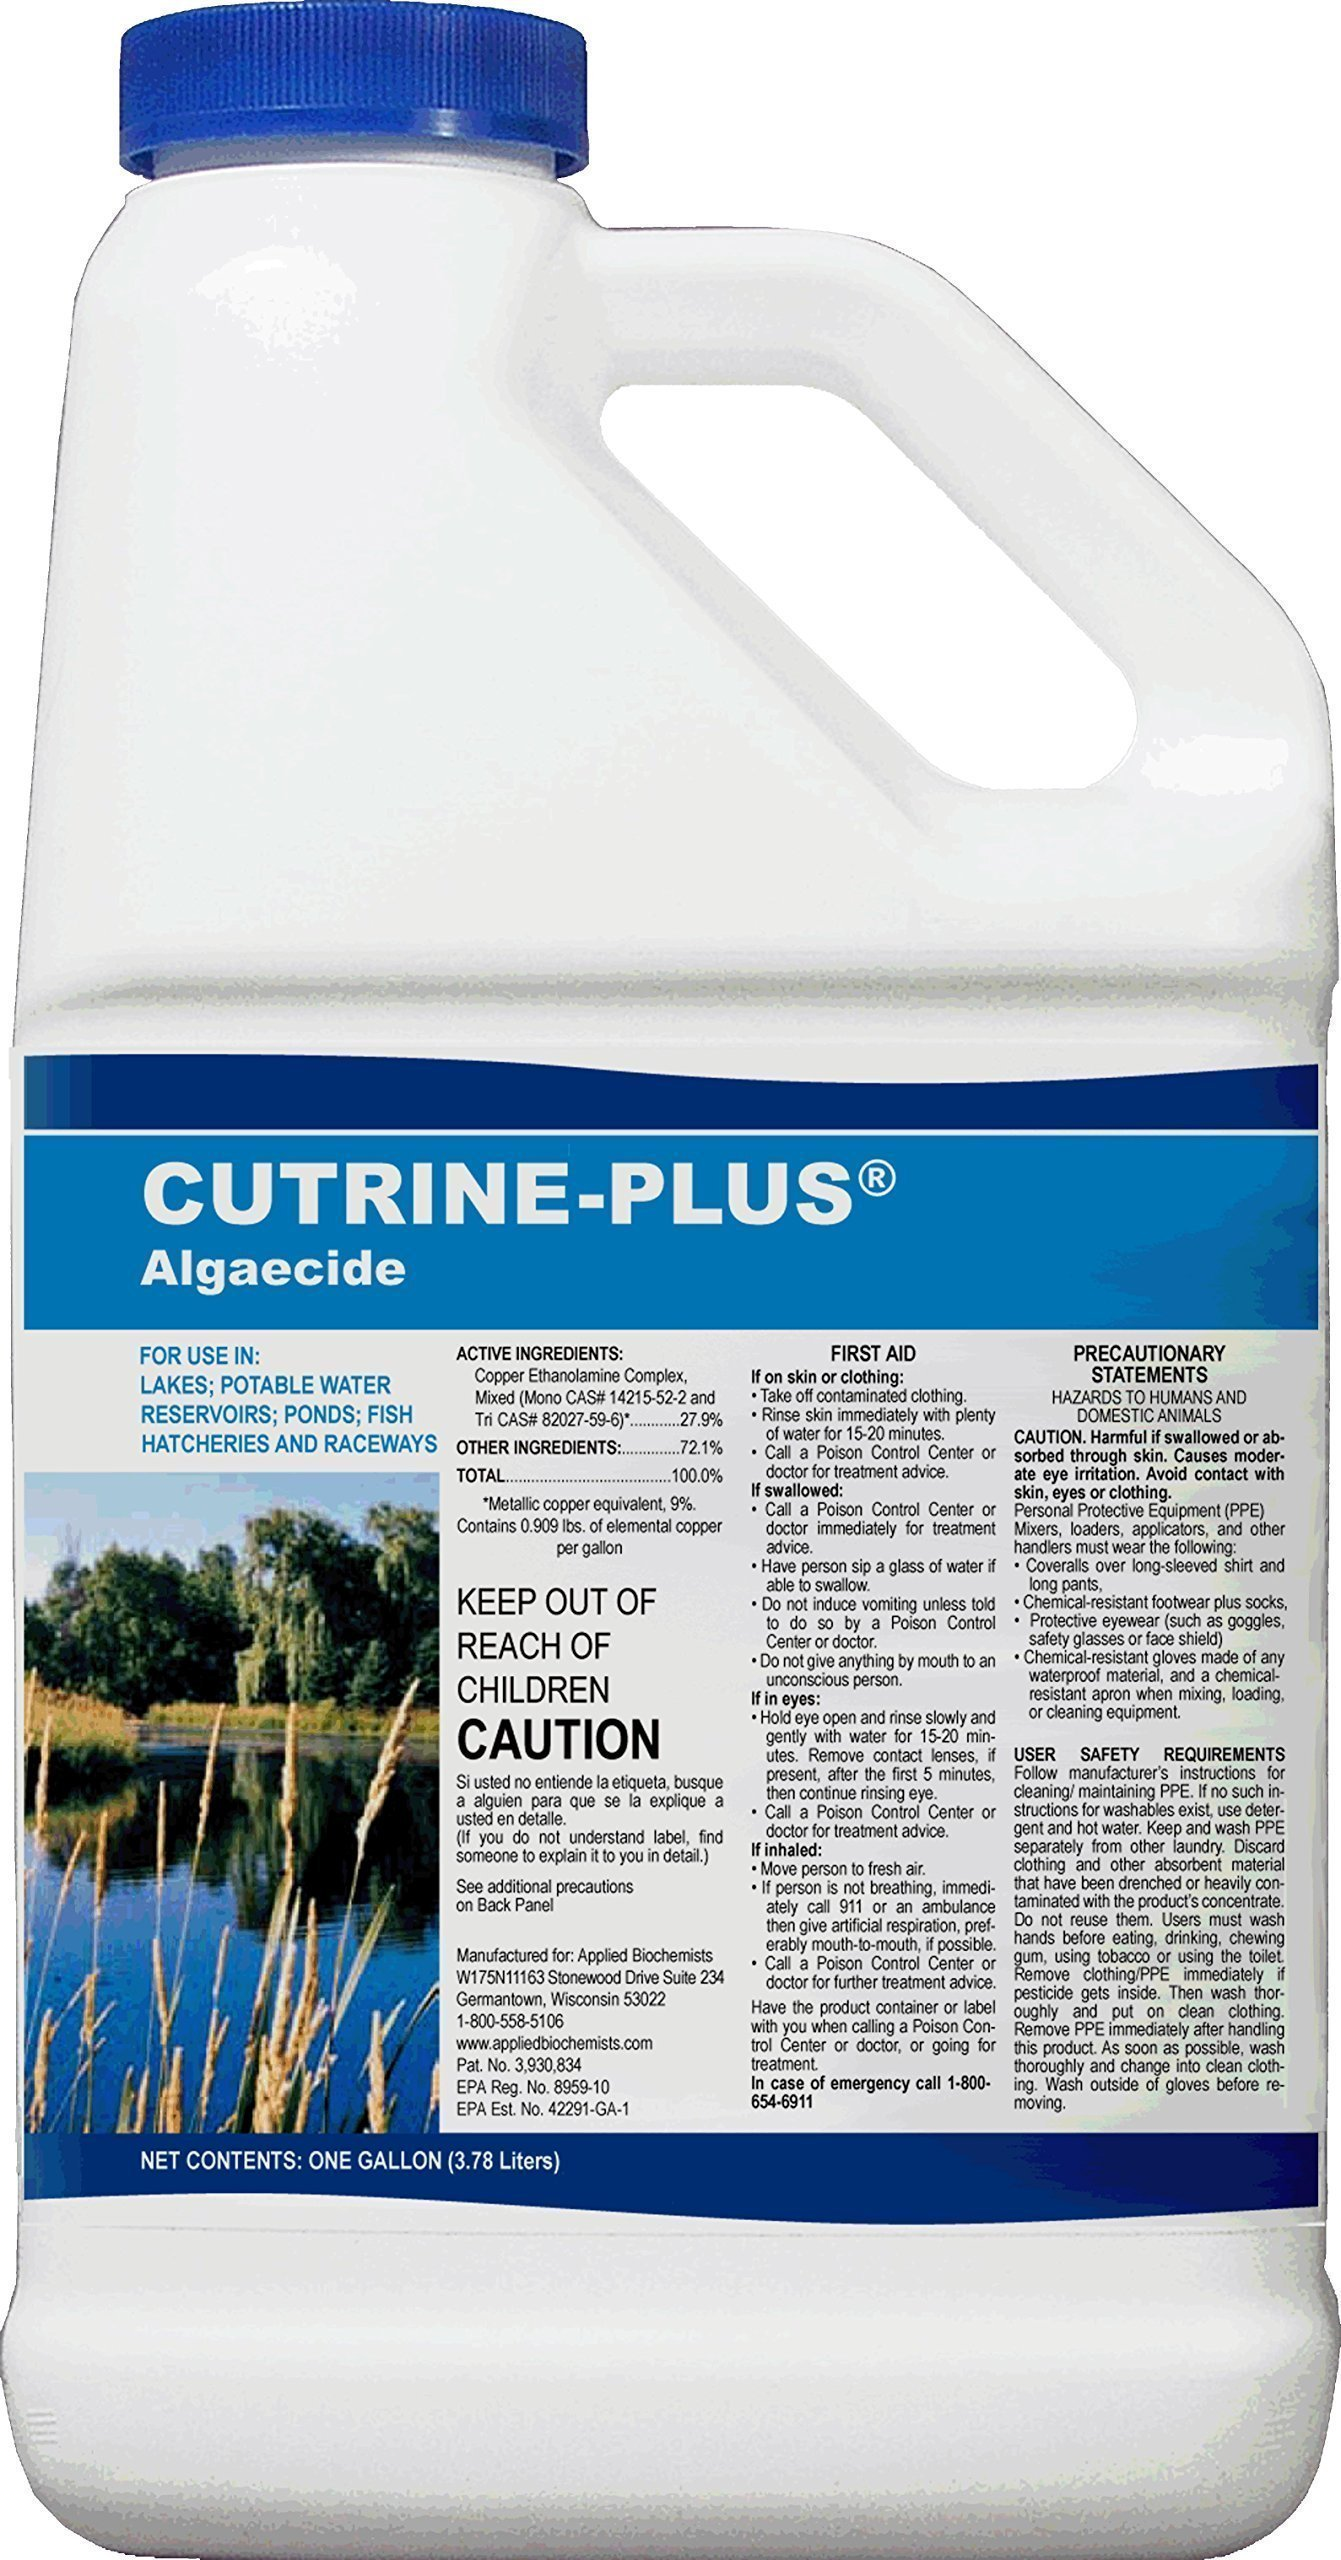 Cutrine Plus 38005901015 76513 Professional Strength Aquatic Algaecide, 1 Gallon, Blue by Cutrine Plus